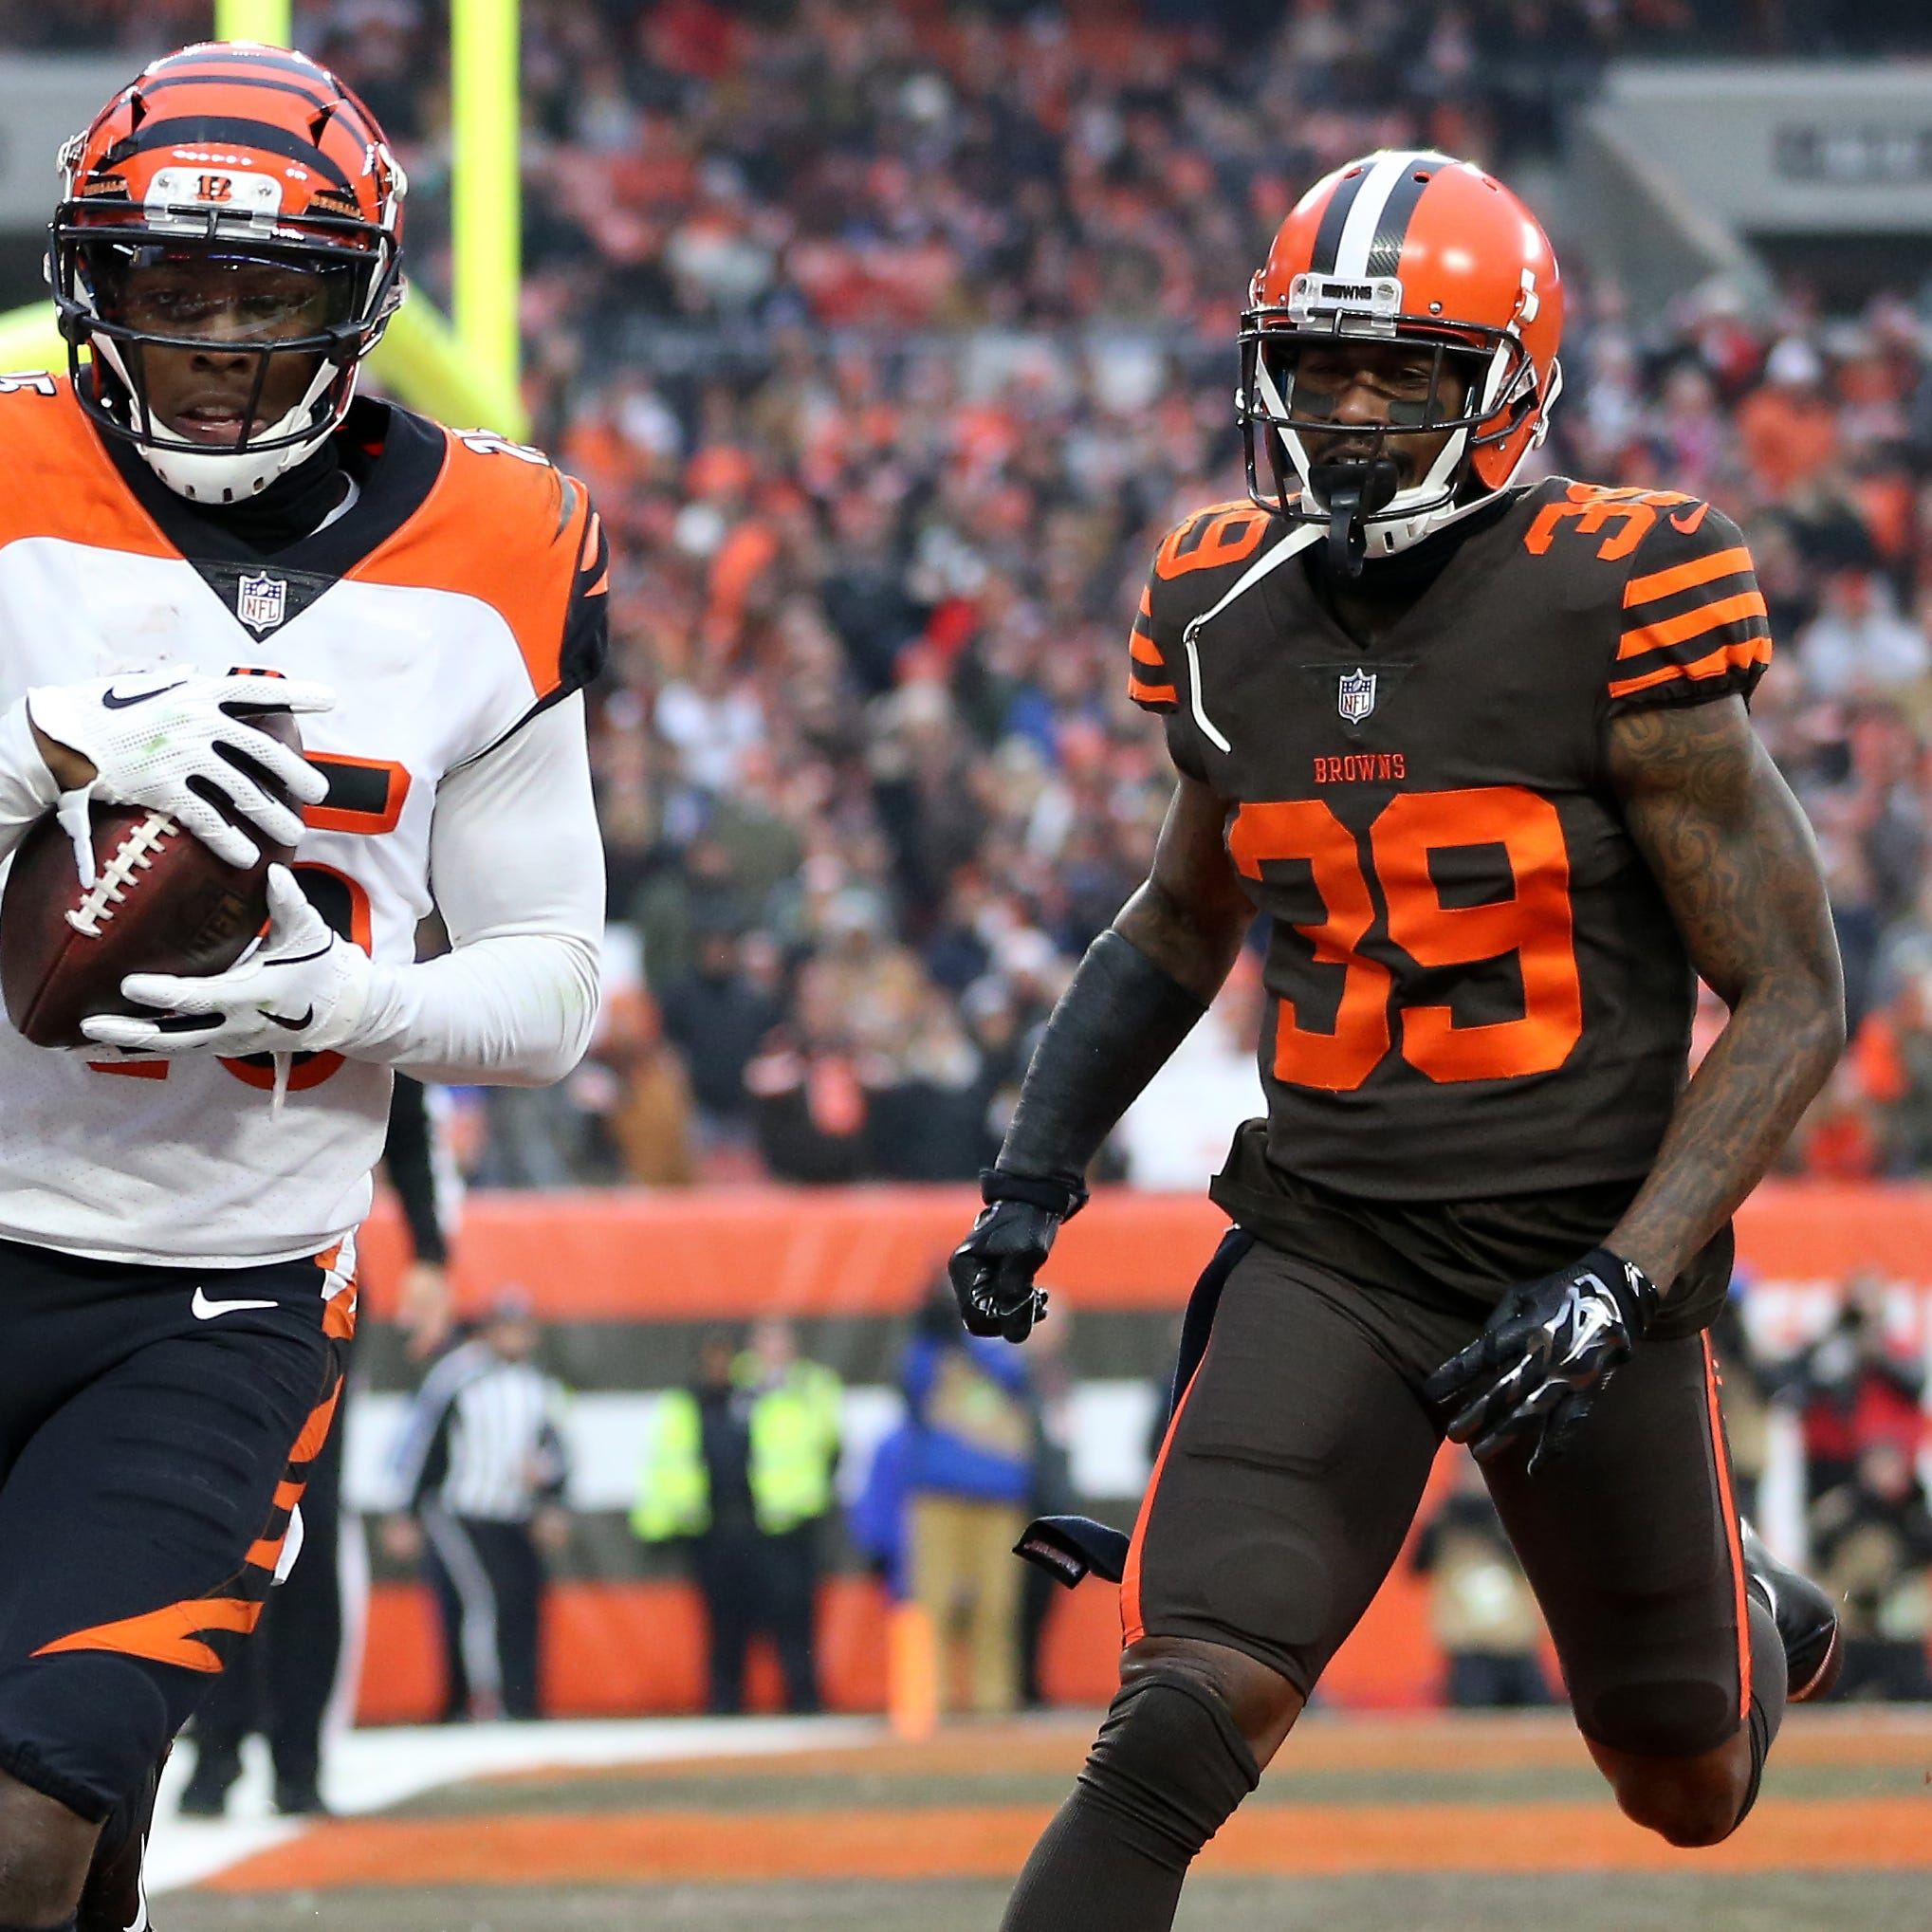 Cincinnati Bengals reinforce belief in John Ross with 2019 NFL Draft decisions